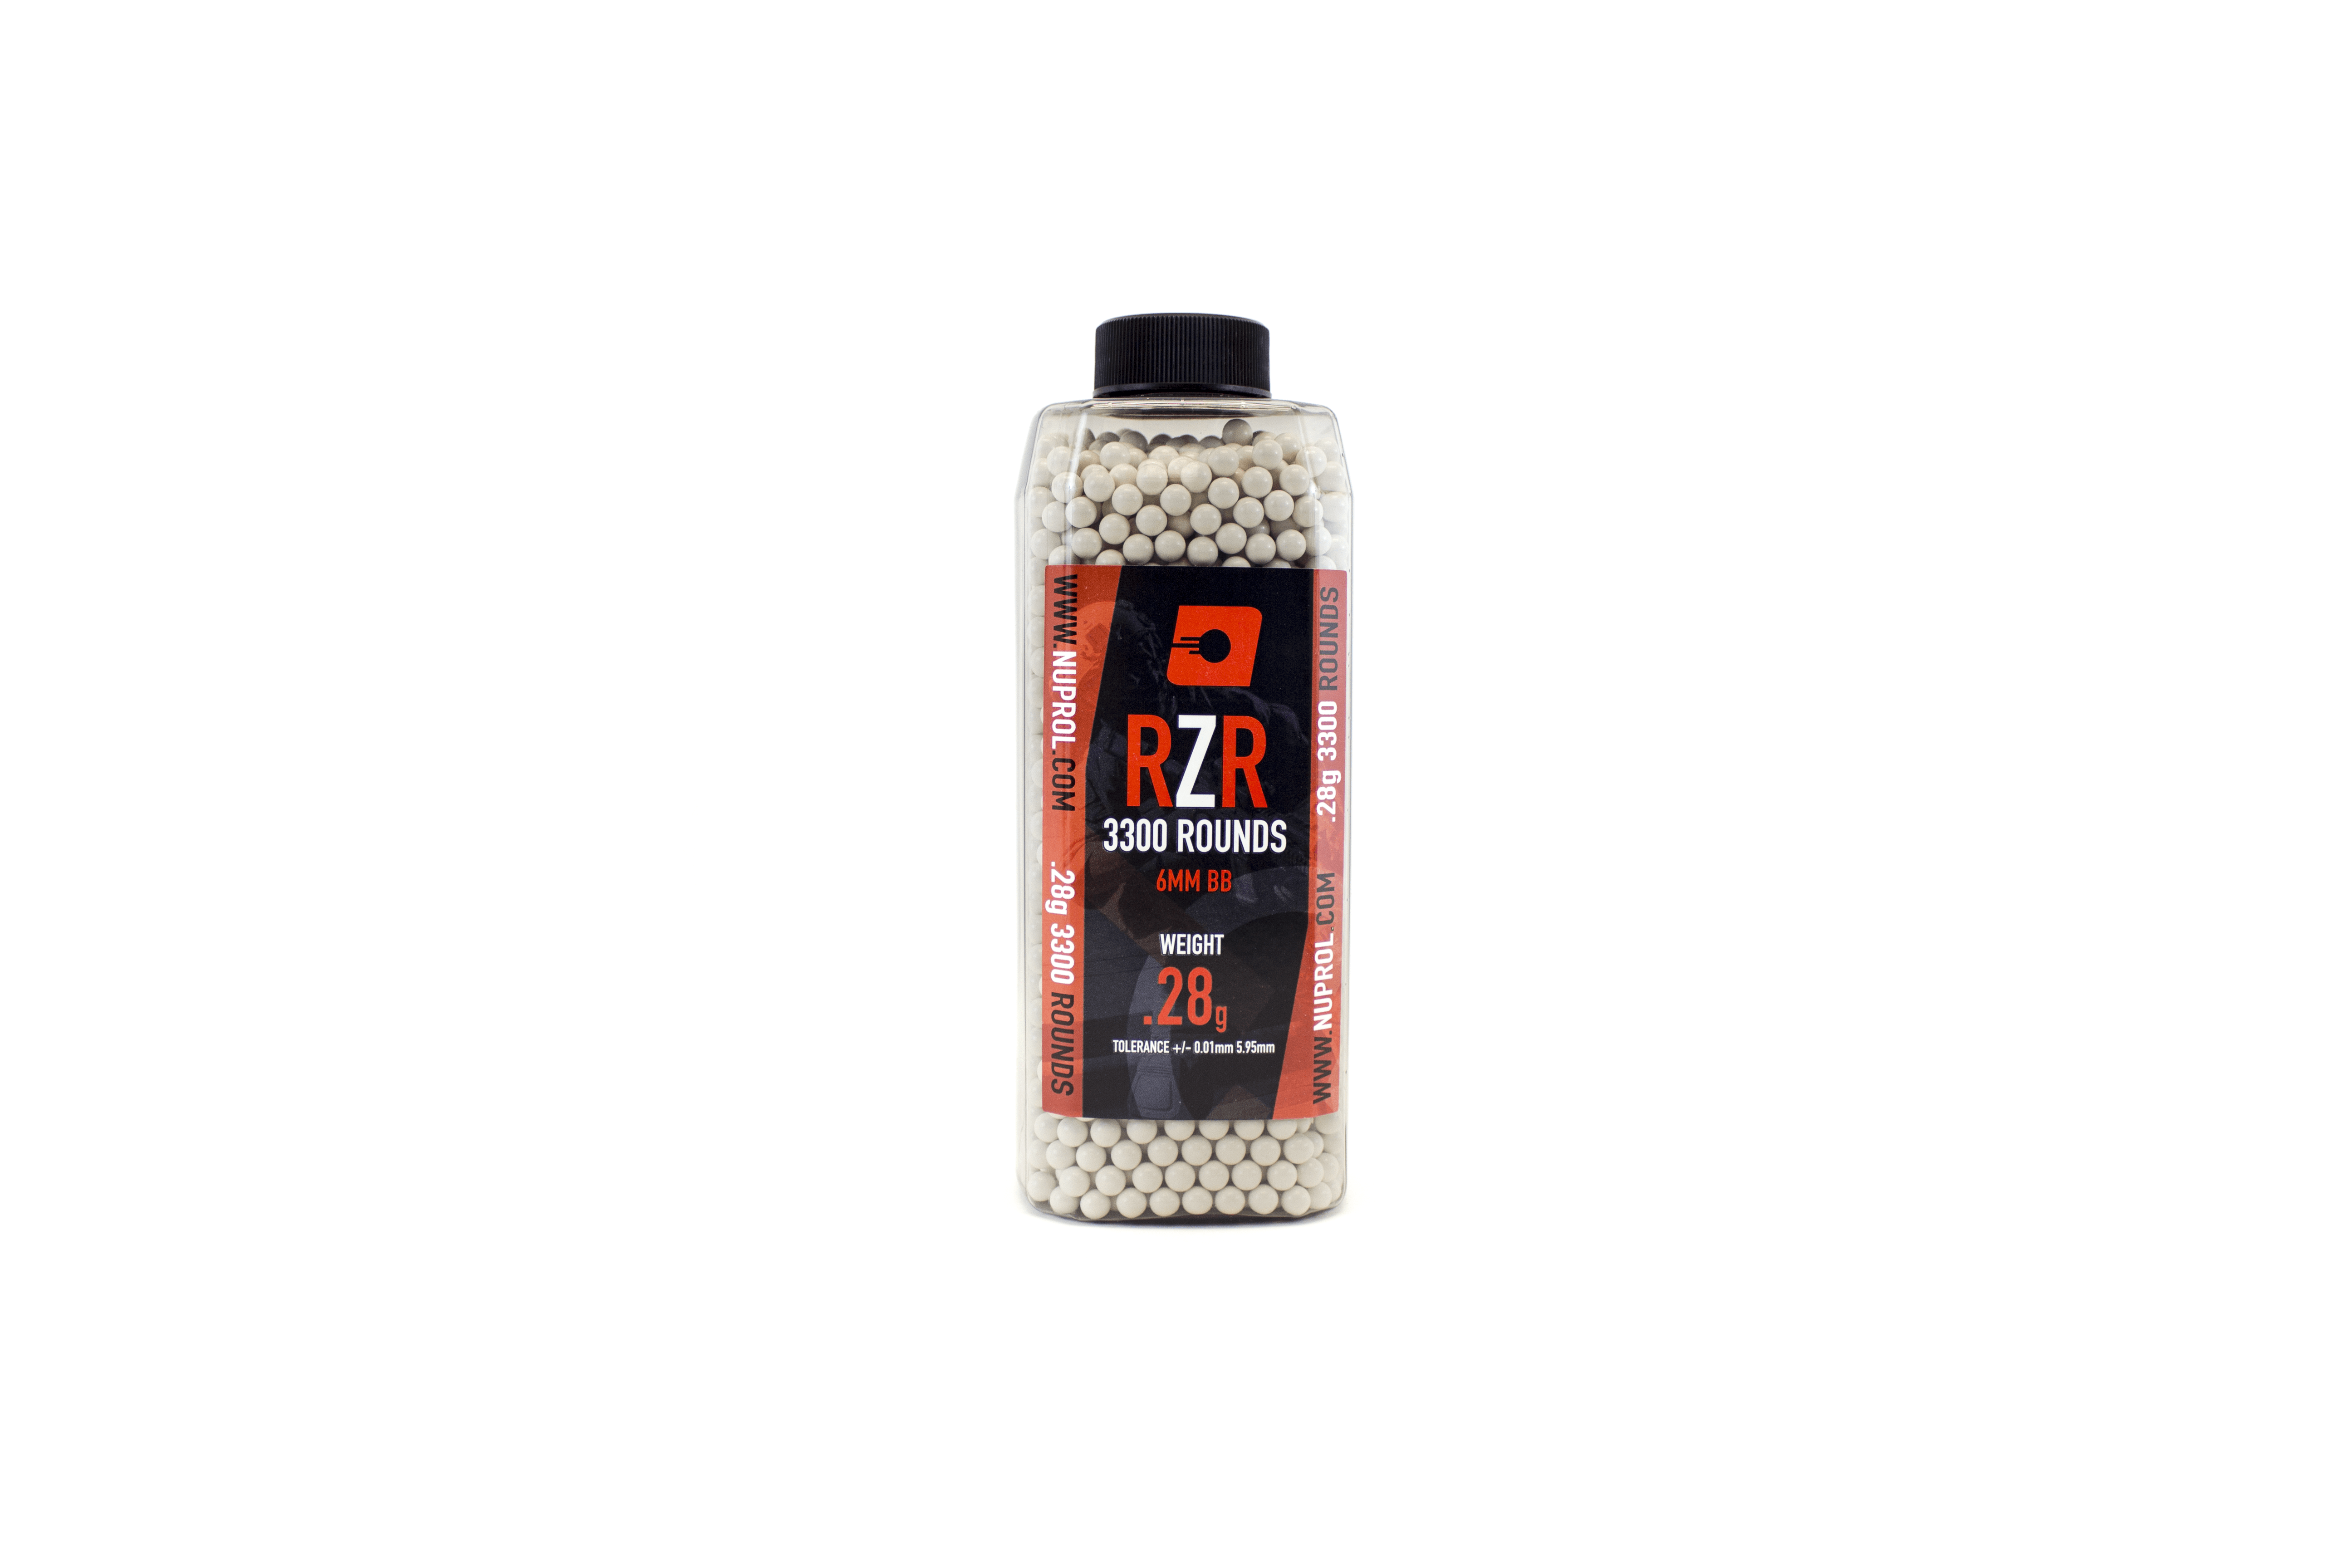 Nuprol RZR 3300Round 0.28G BB'S product image